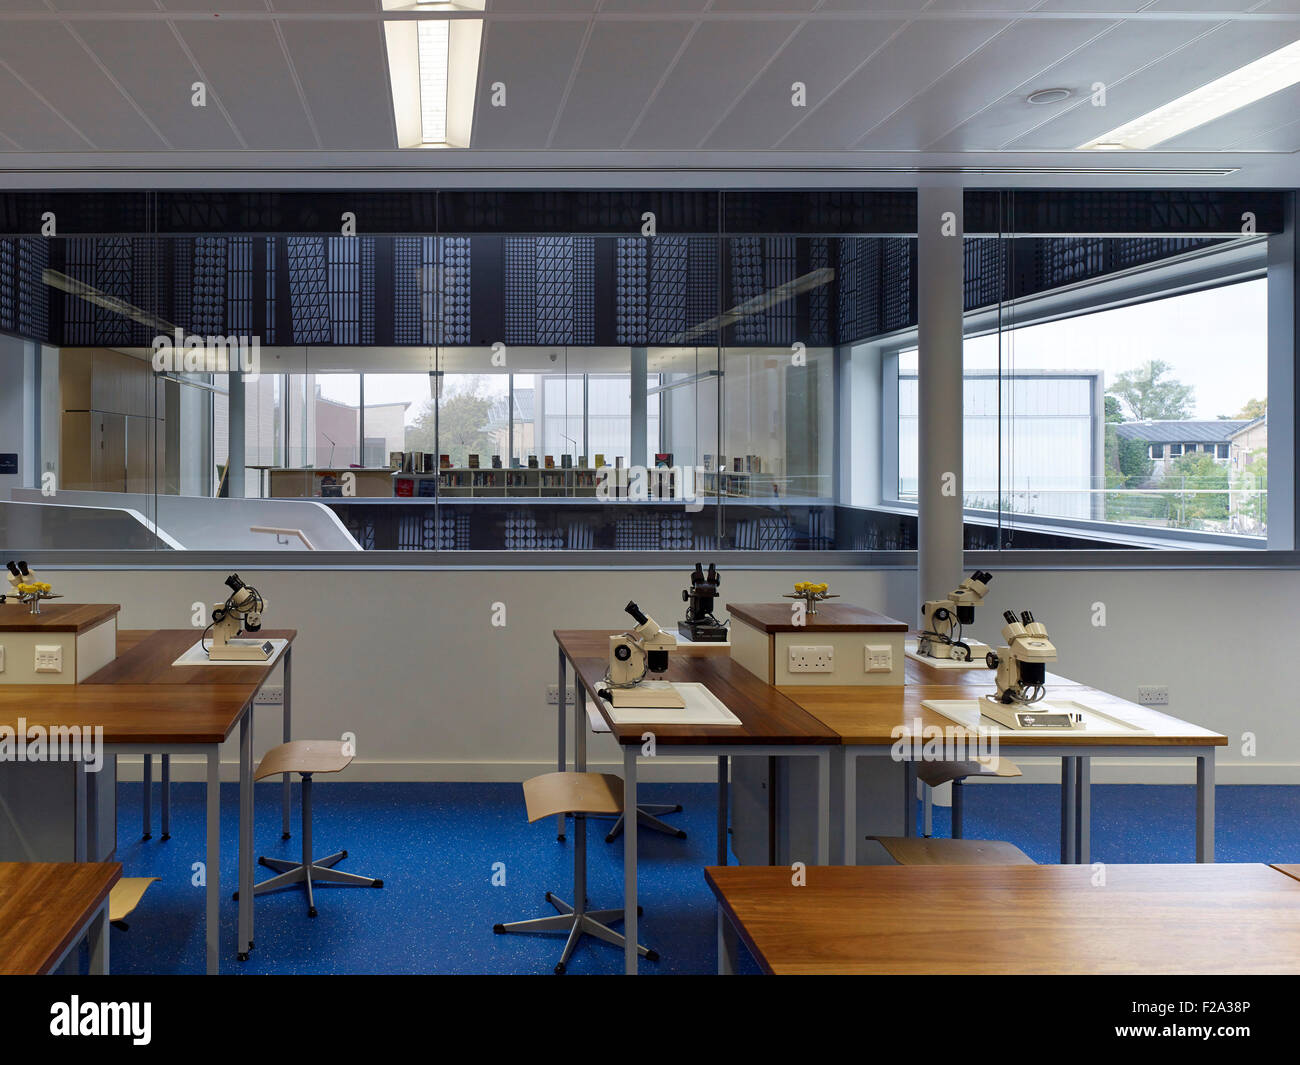 School Laboratory With Window Wall And View Through